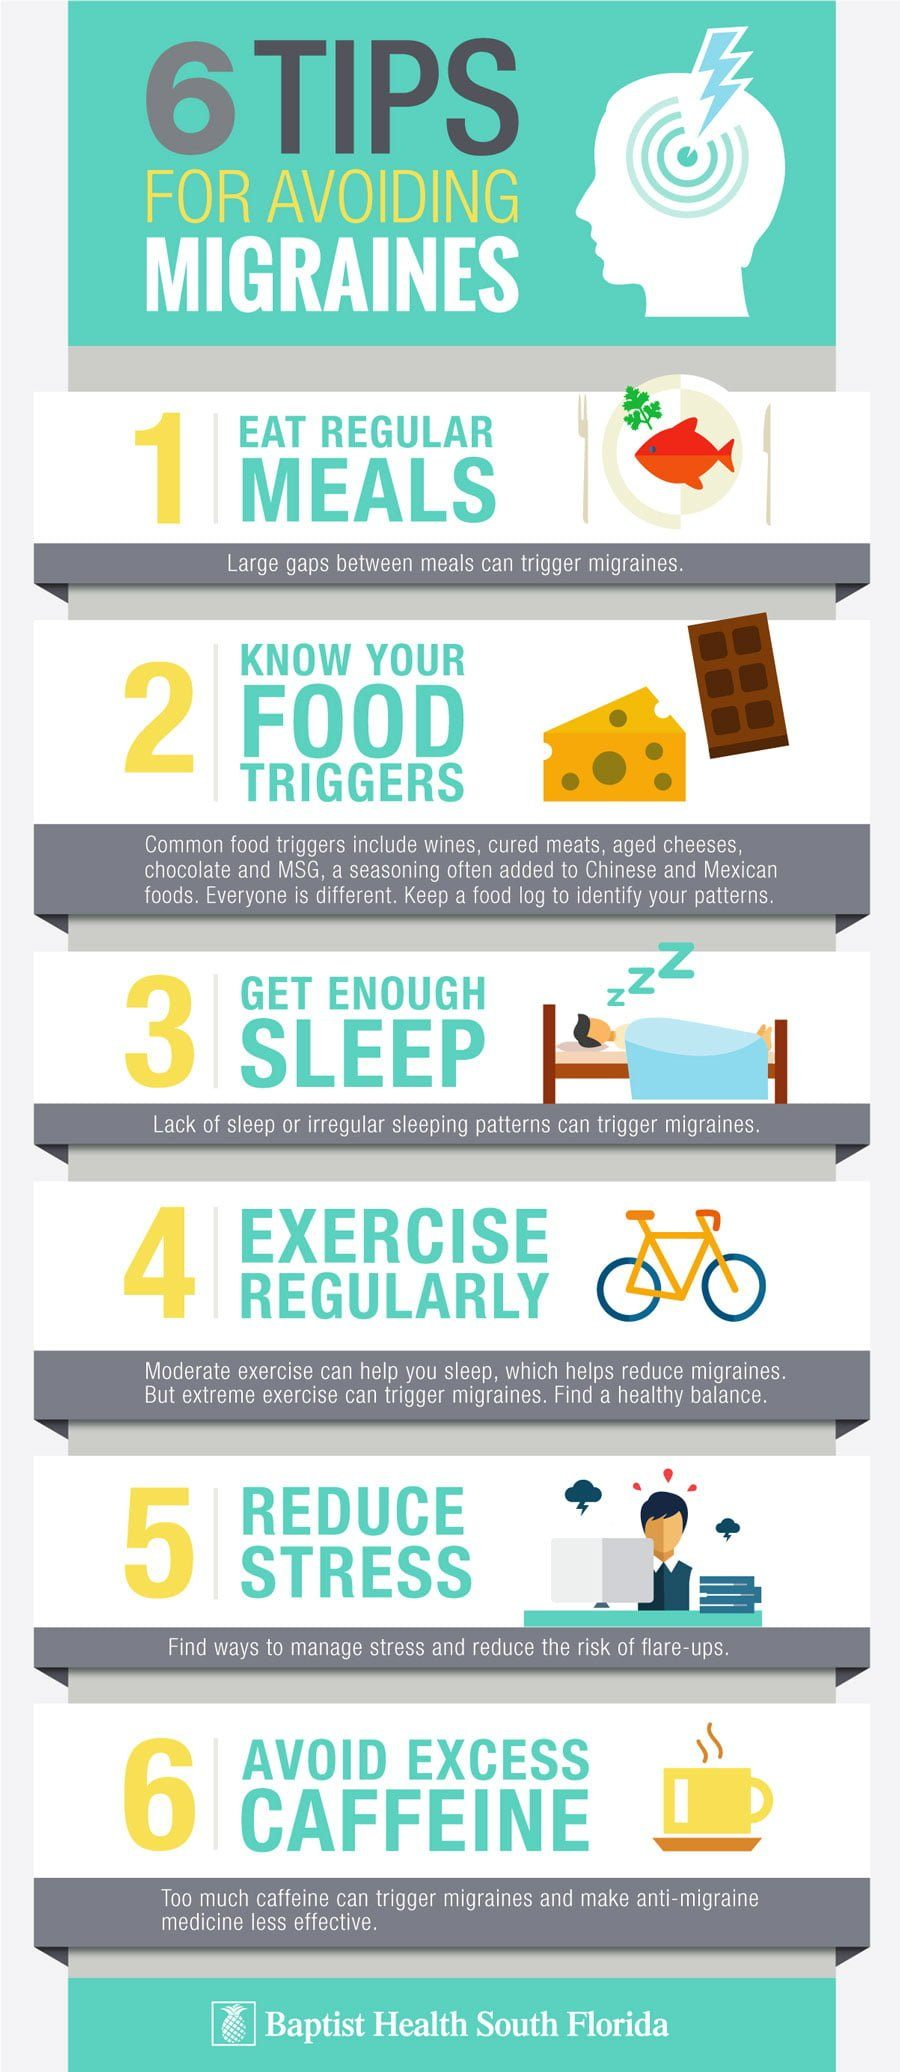 6 Tips for Avoiding Migraines Infographic